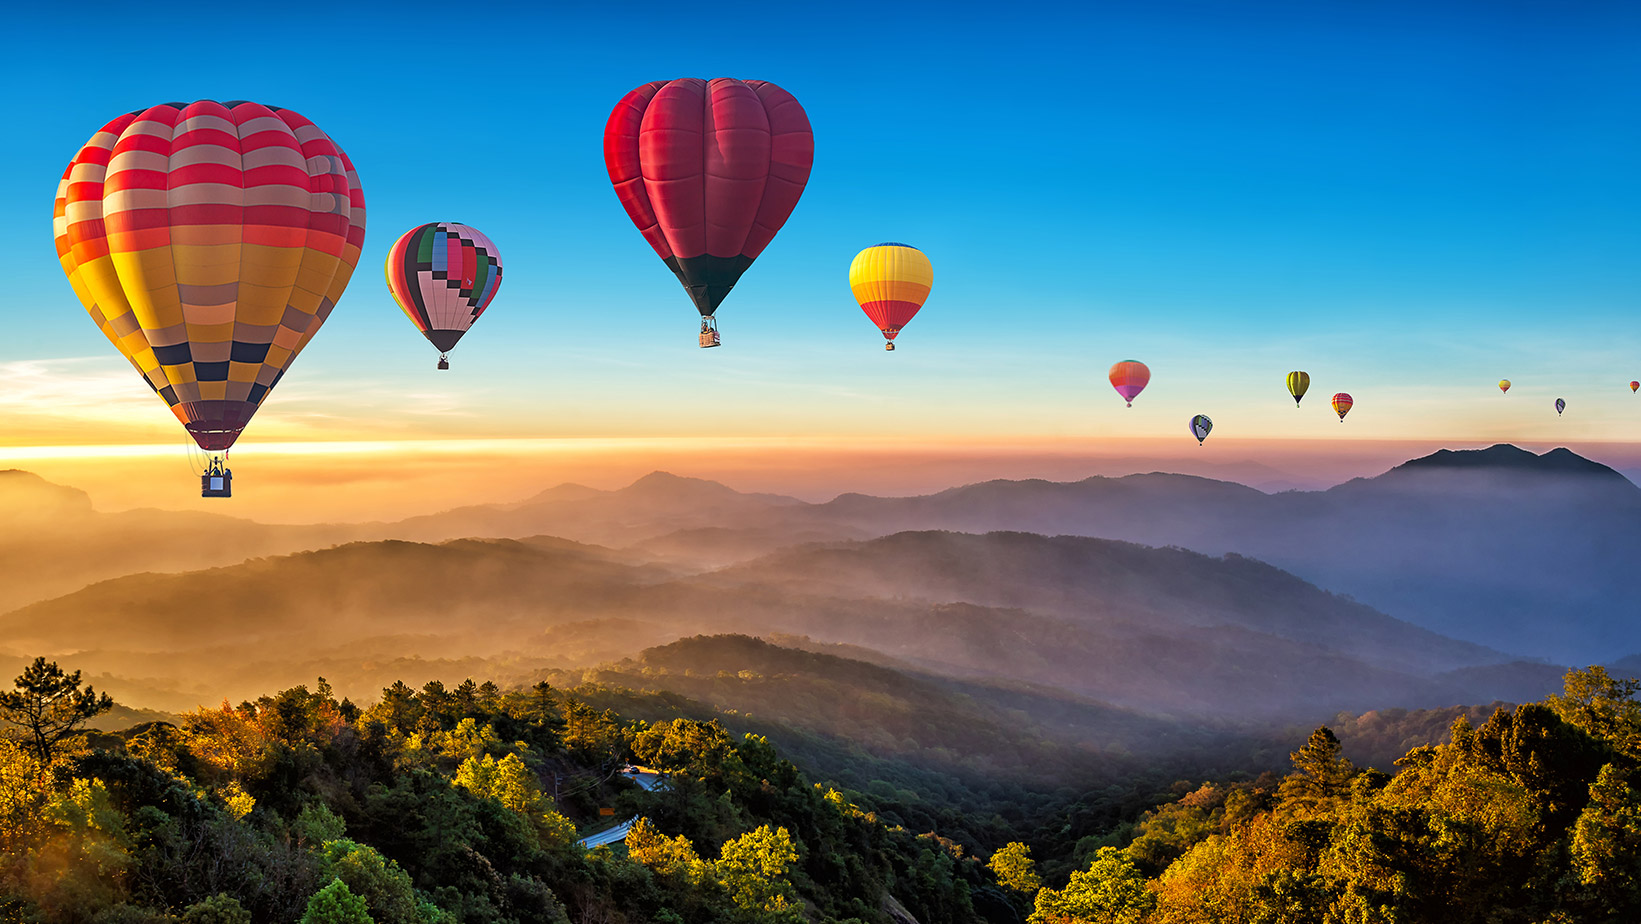 Image of colorful air balloons over nice scenery